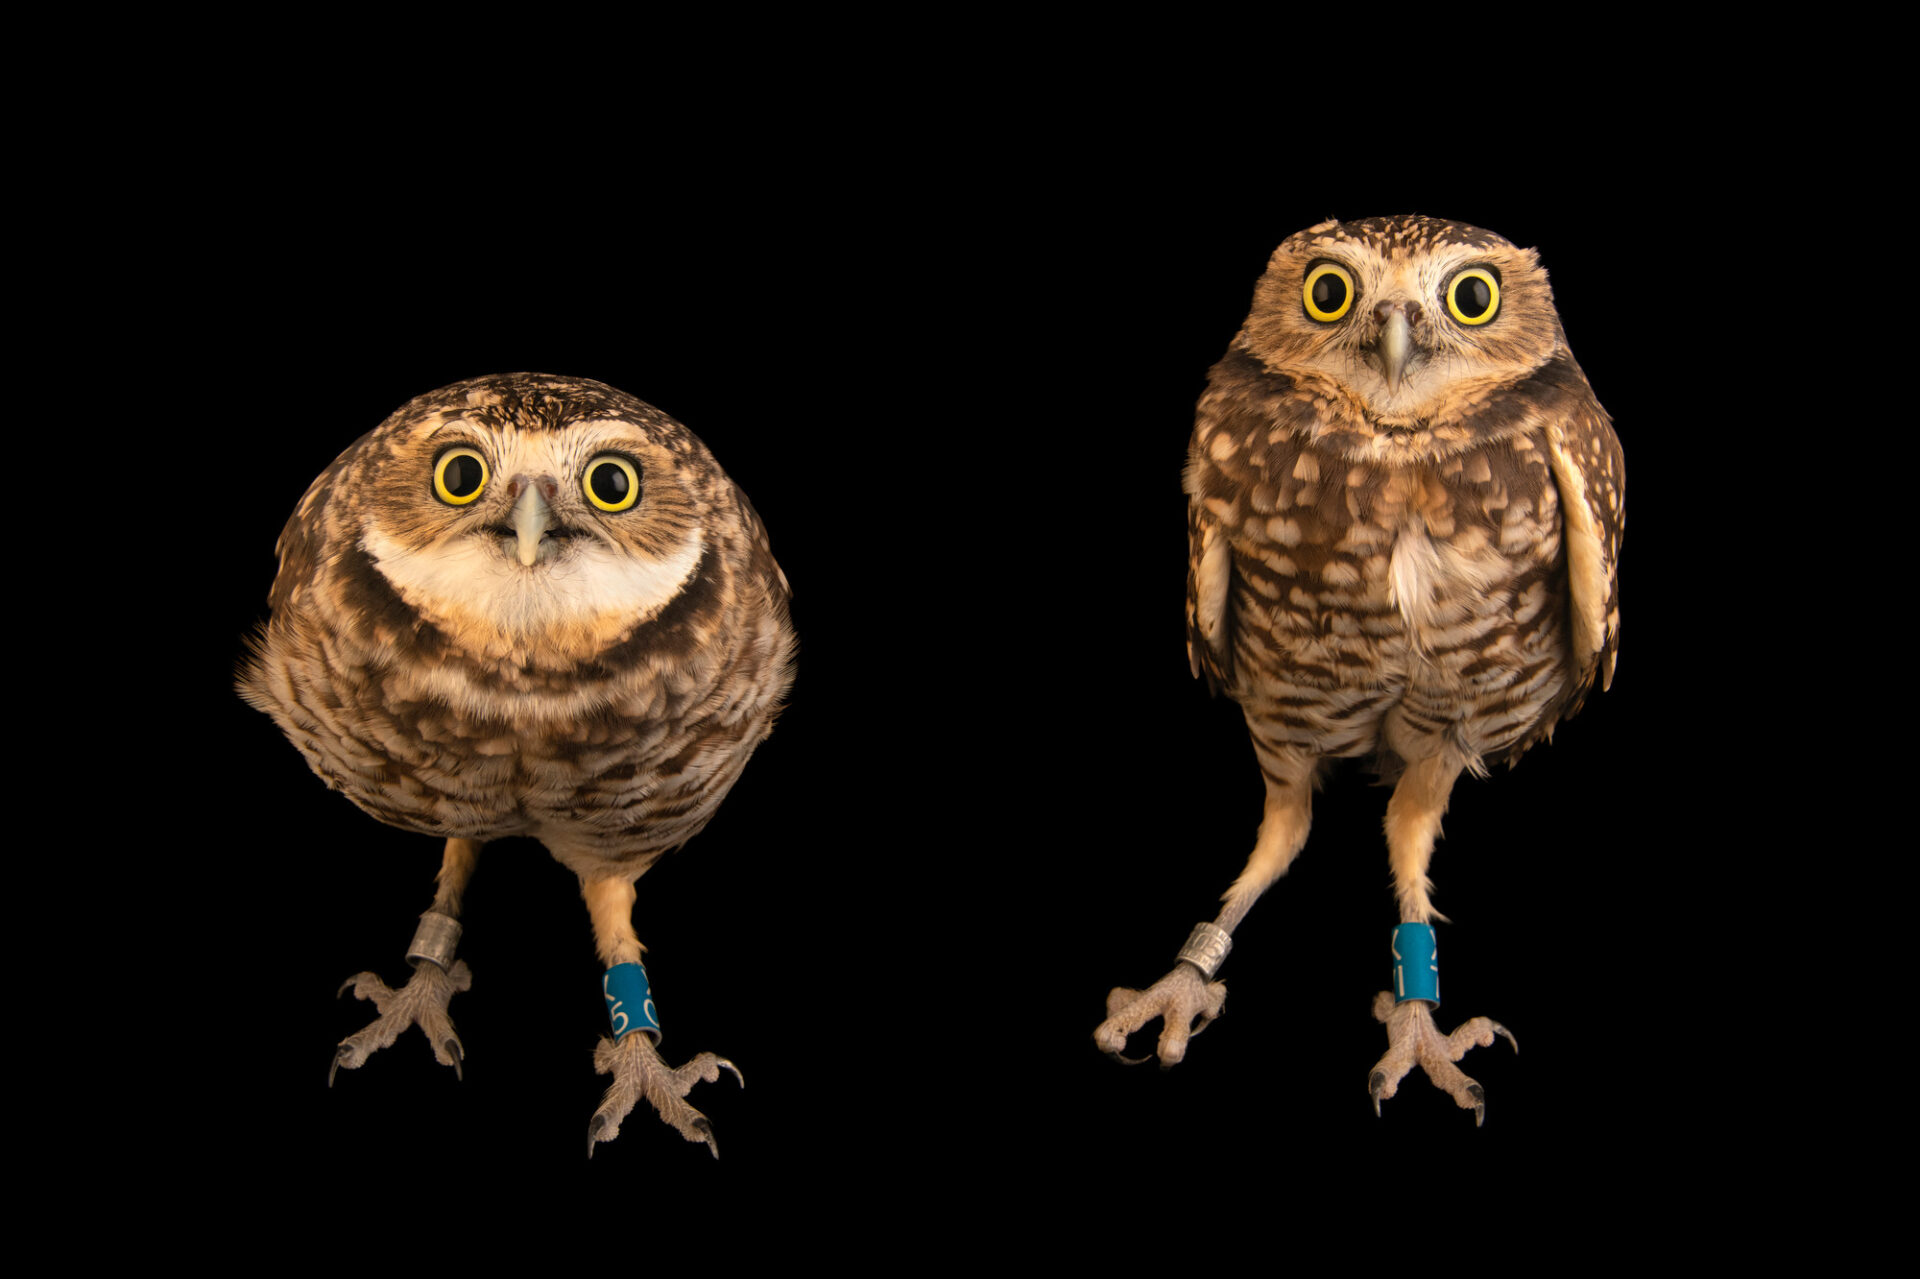 Photo: Two western burrowing owls (Athene cunicularia hypugaea) at Wild At Heart in AZ.